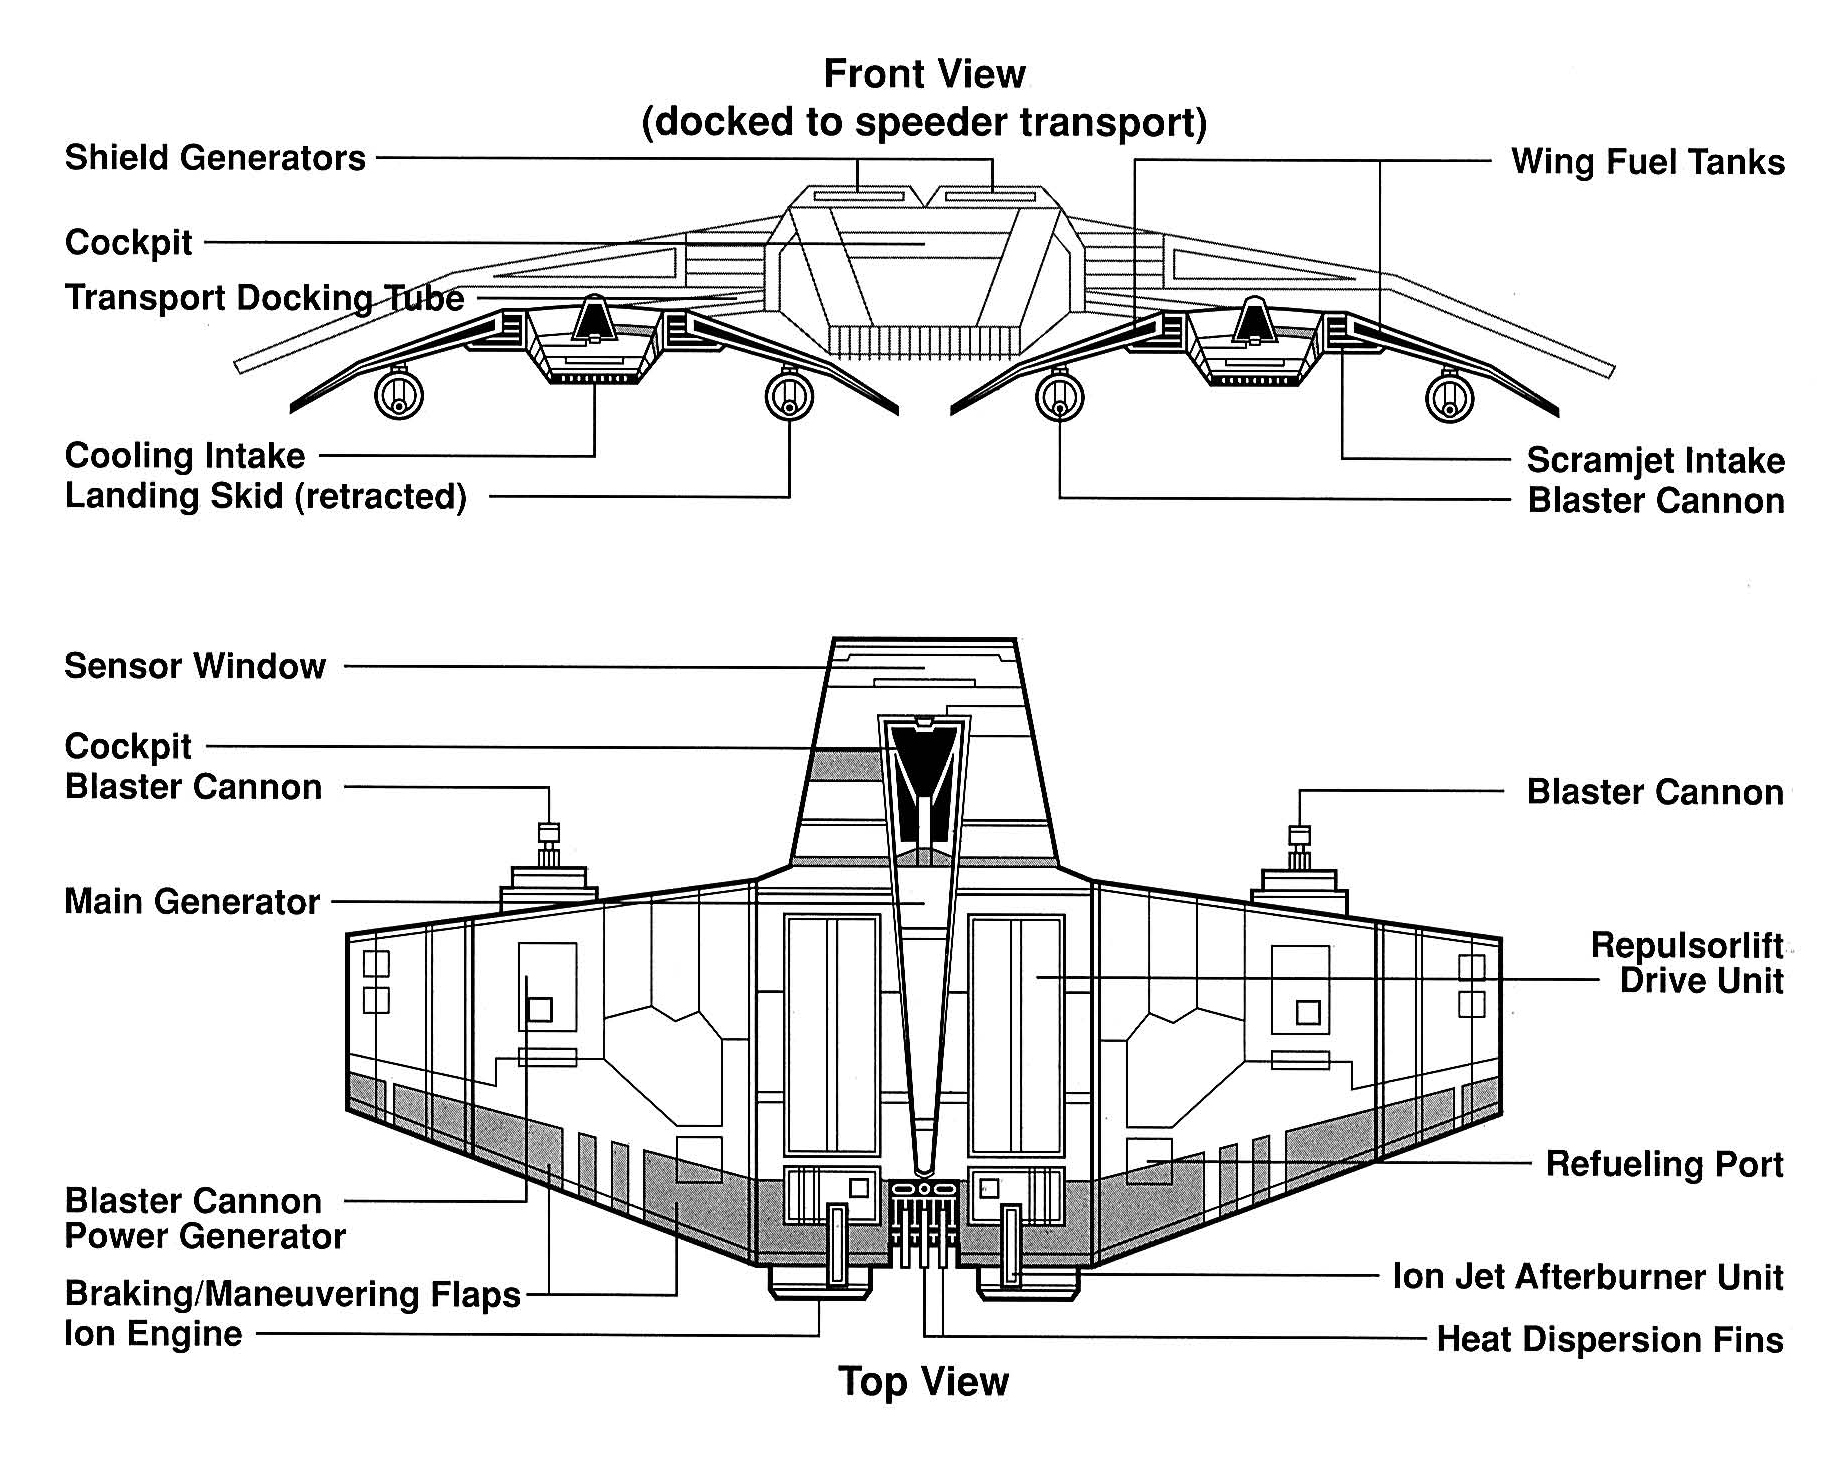 Image Vwing Egvv Wookieepedia Fandom Powered By Wikia V Star Wiring Diagram Free Download Schematic